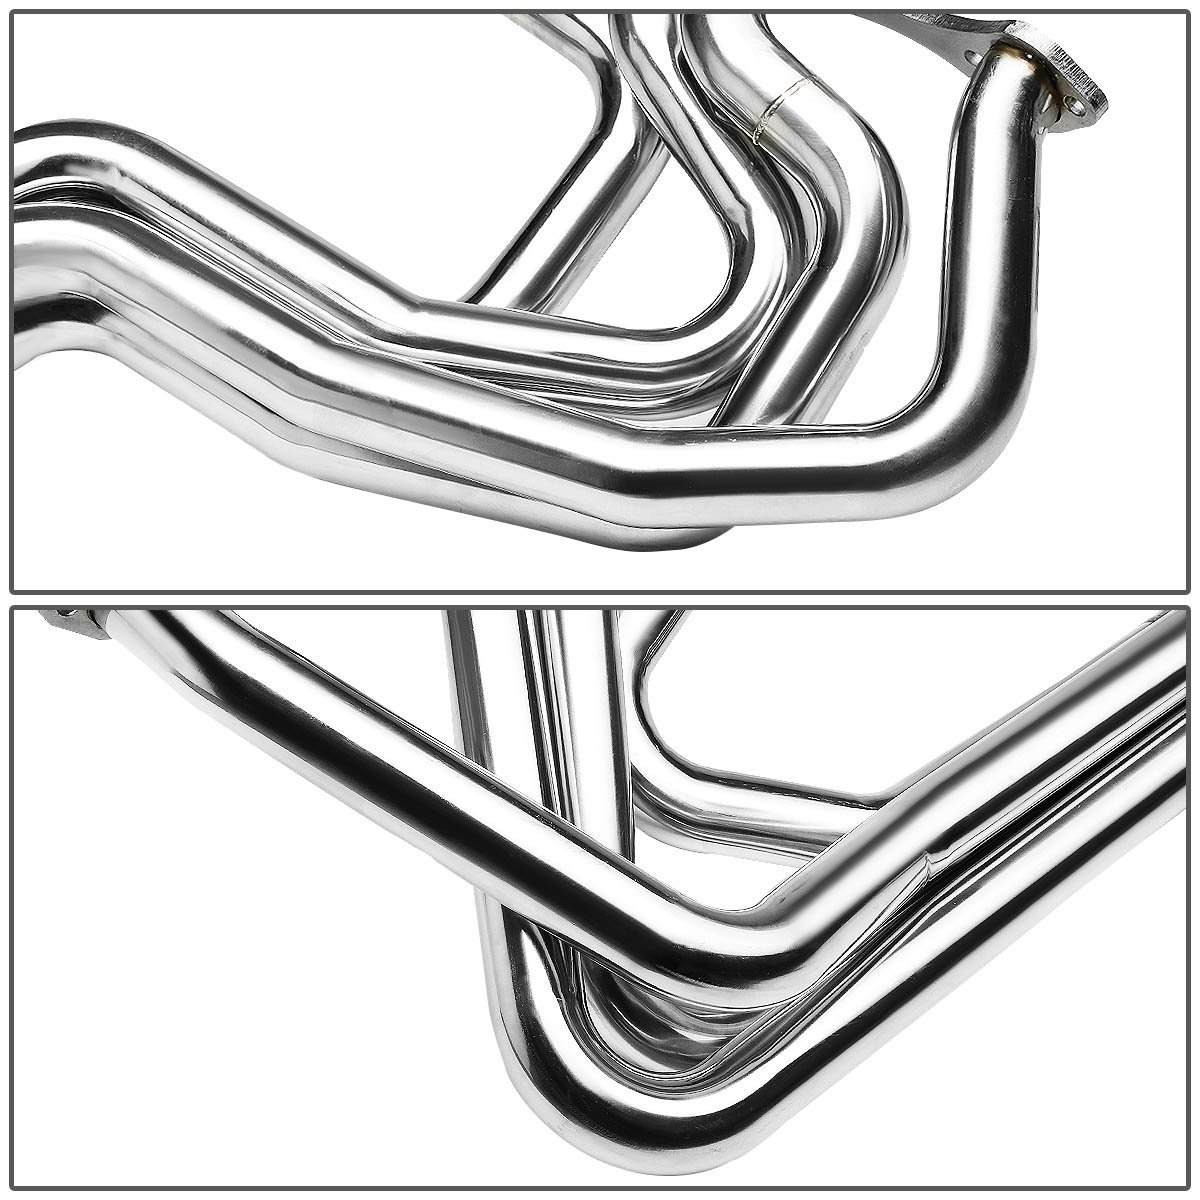 For Chevy Small Block V8 Imca Circle Track Chrome 4 1 Performance